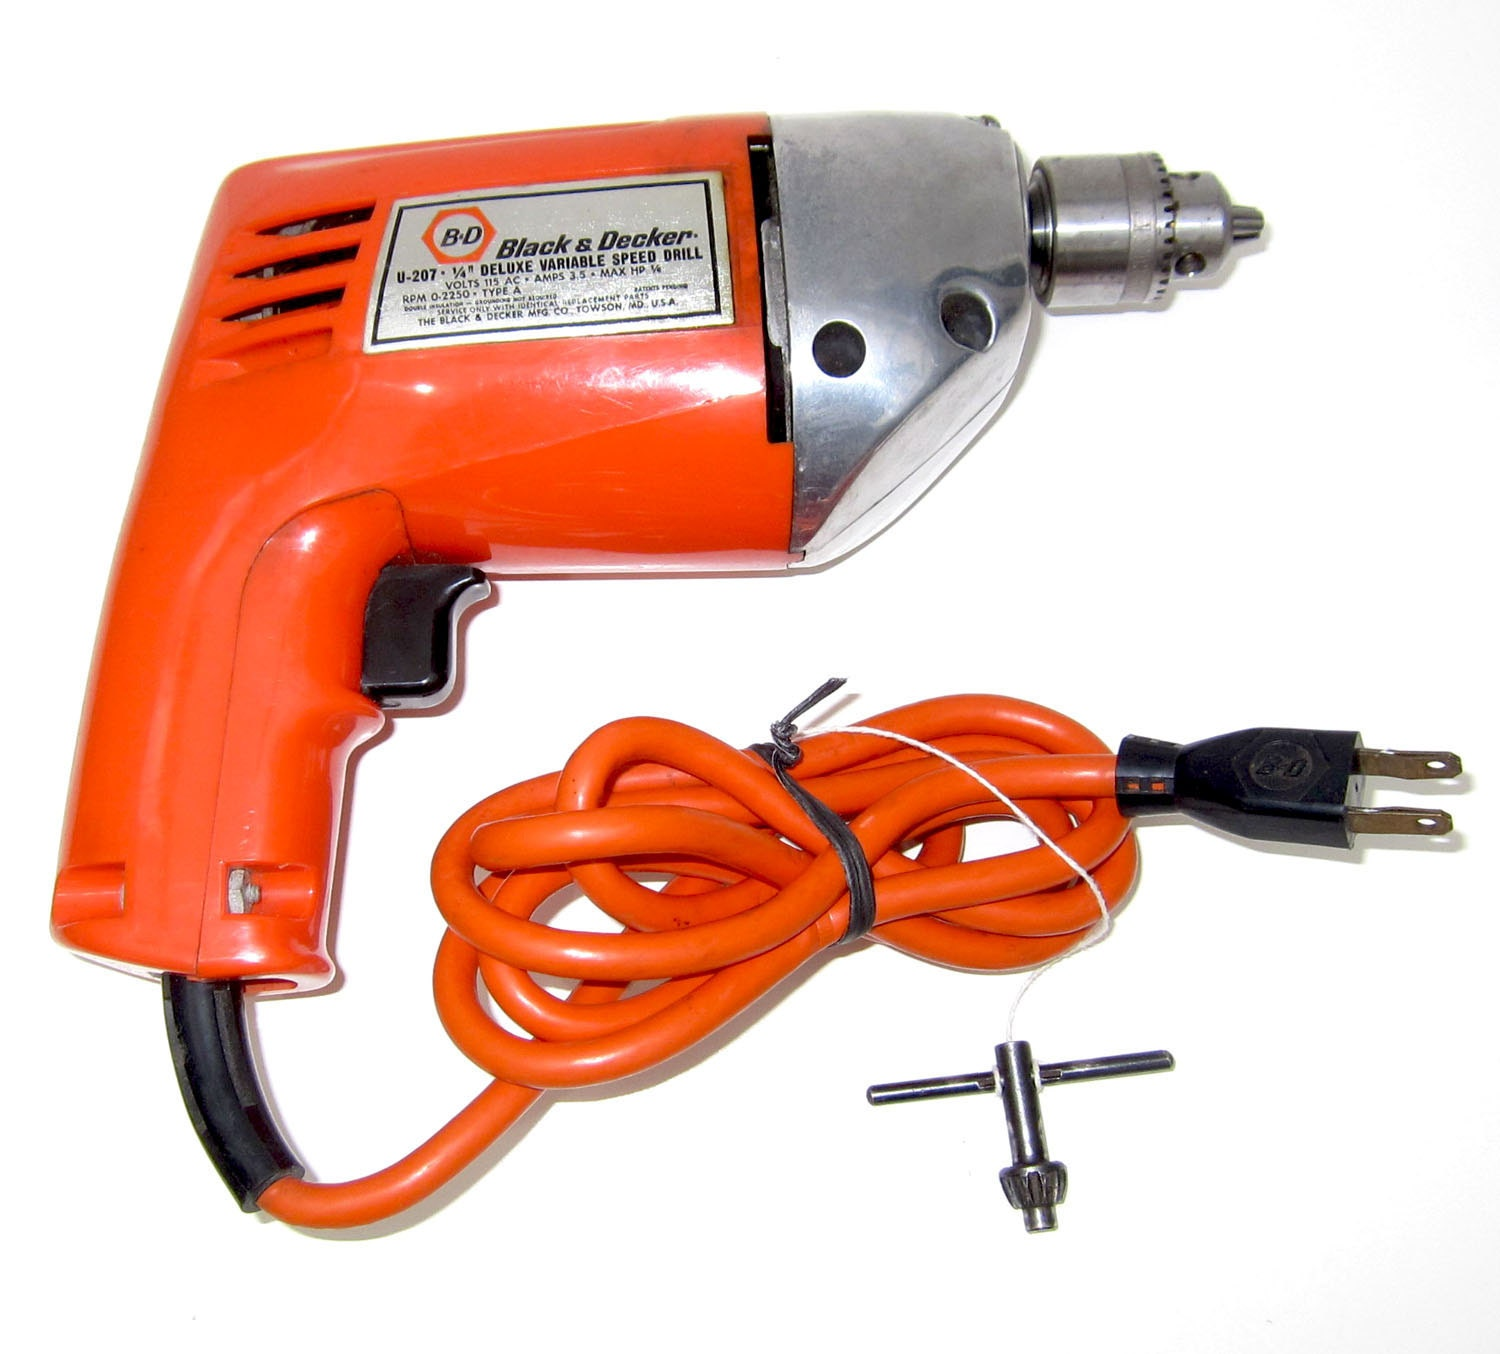 Vintage Orange Black Amp Decker Electric Drill With Chuck Key